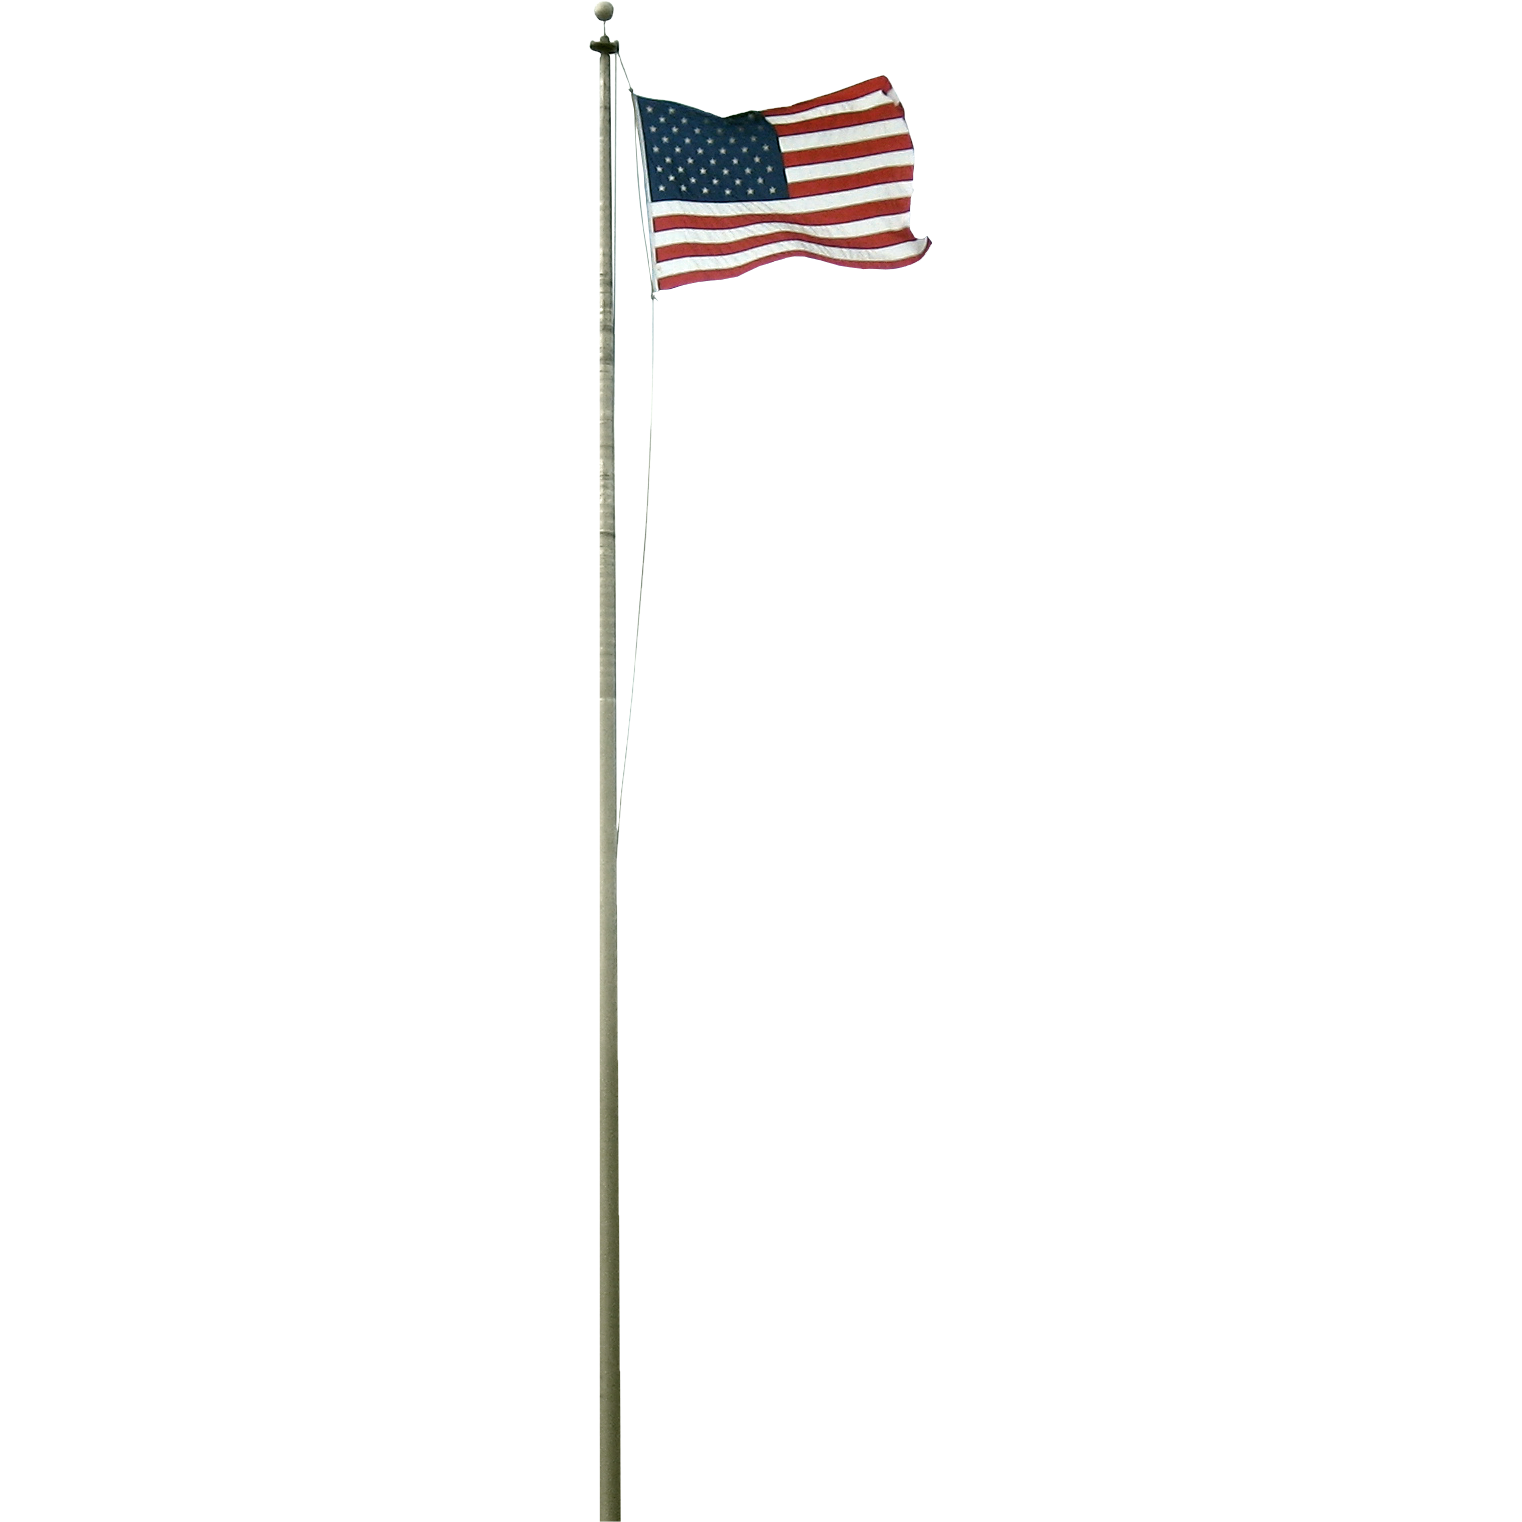 Us flag pole clipart download American flag pole clipart hd - ClipartFest download